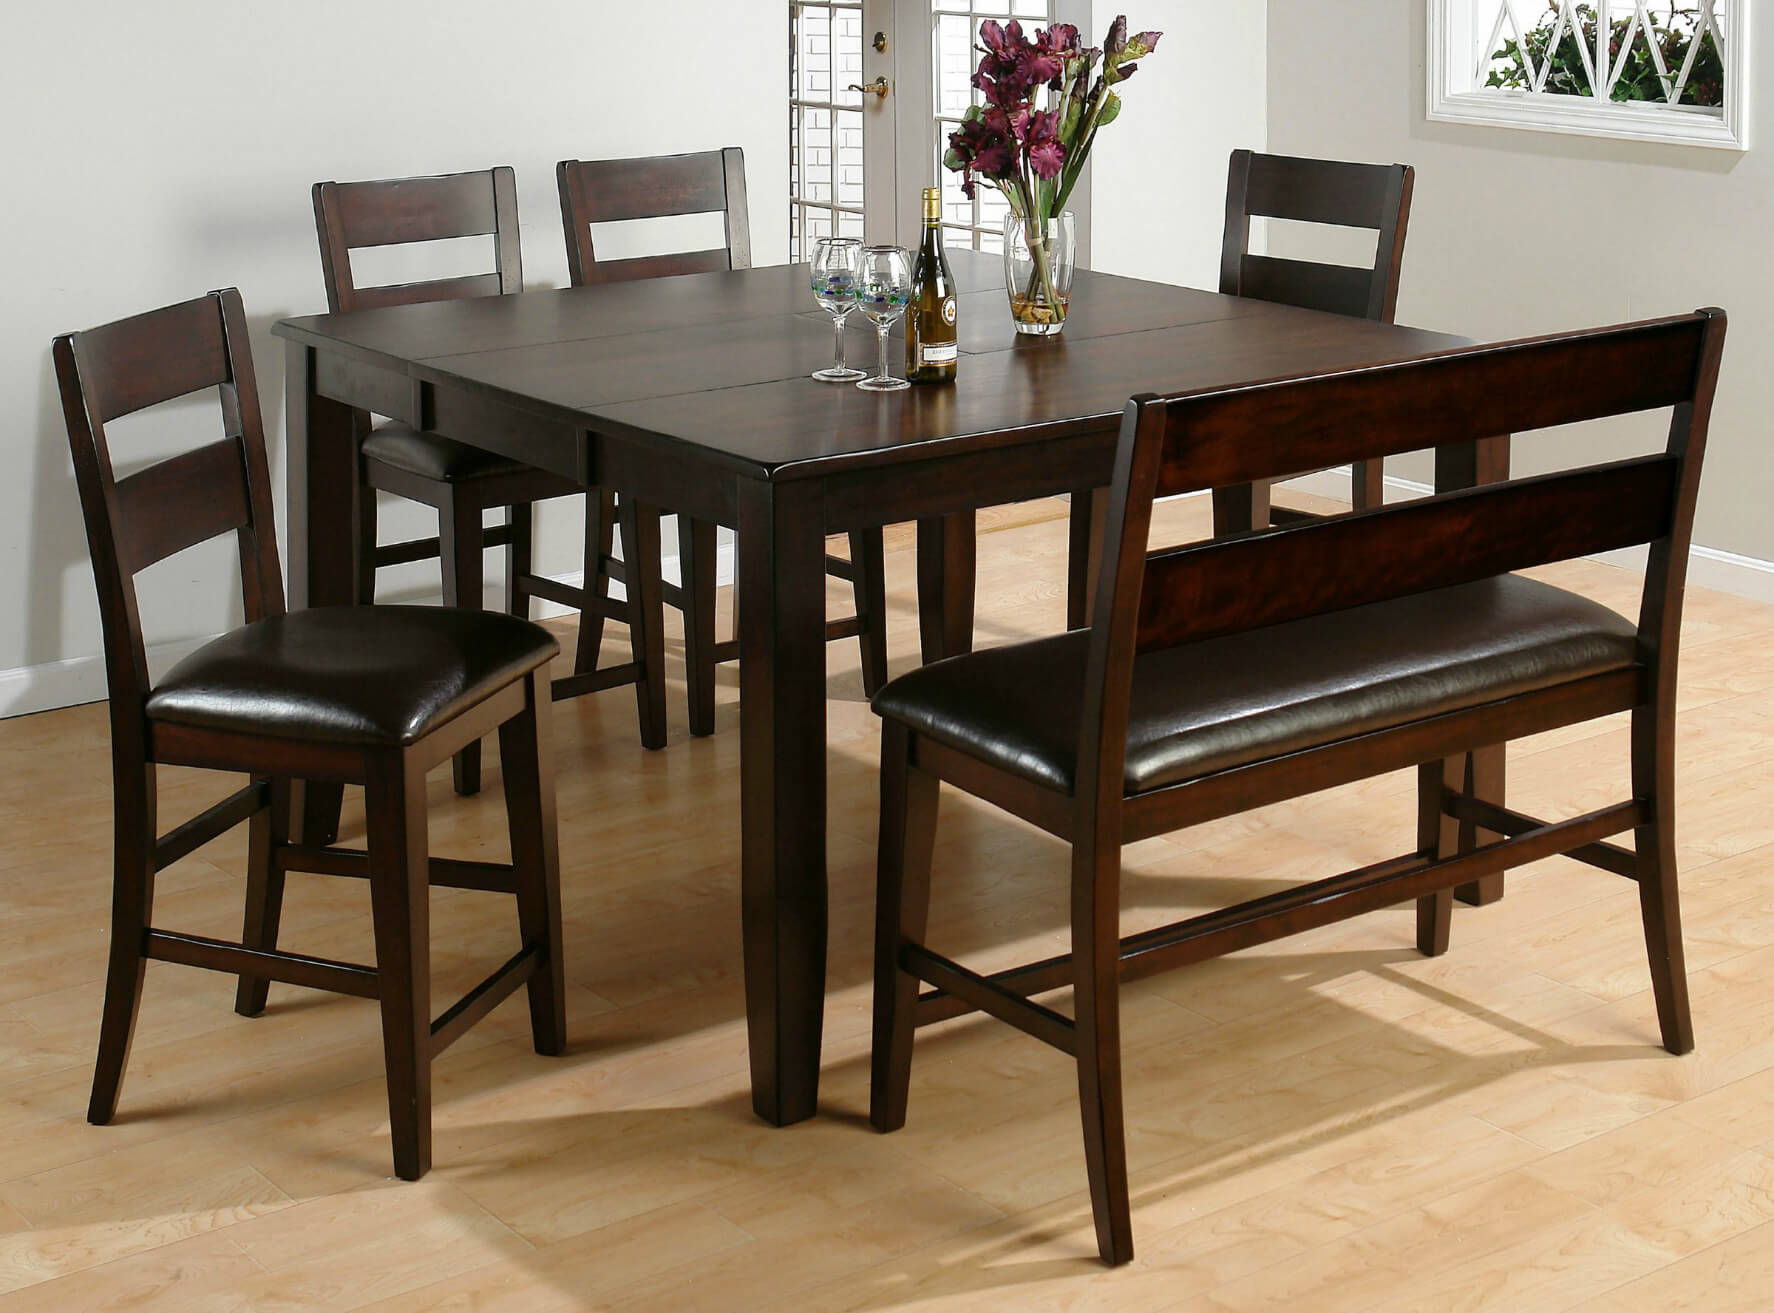 26 big small dining room sets with bench seating Breakfast table with bench